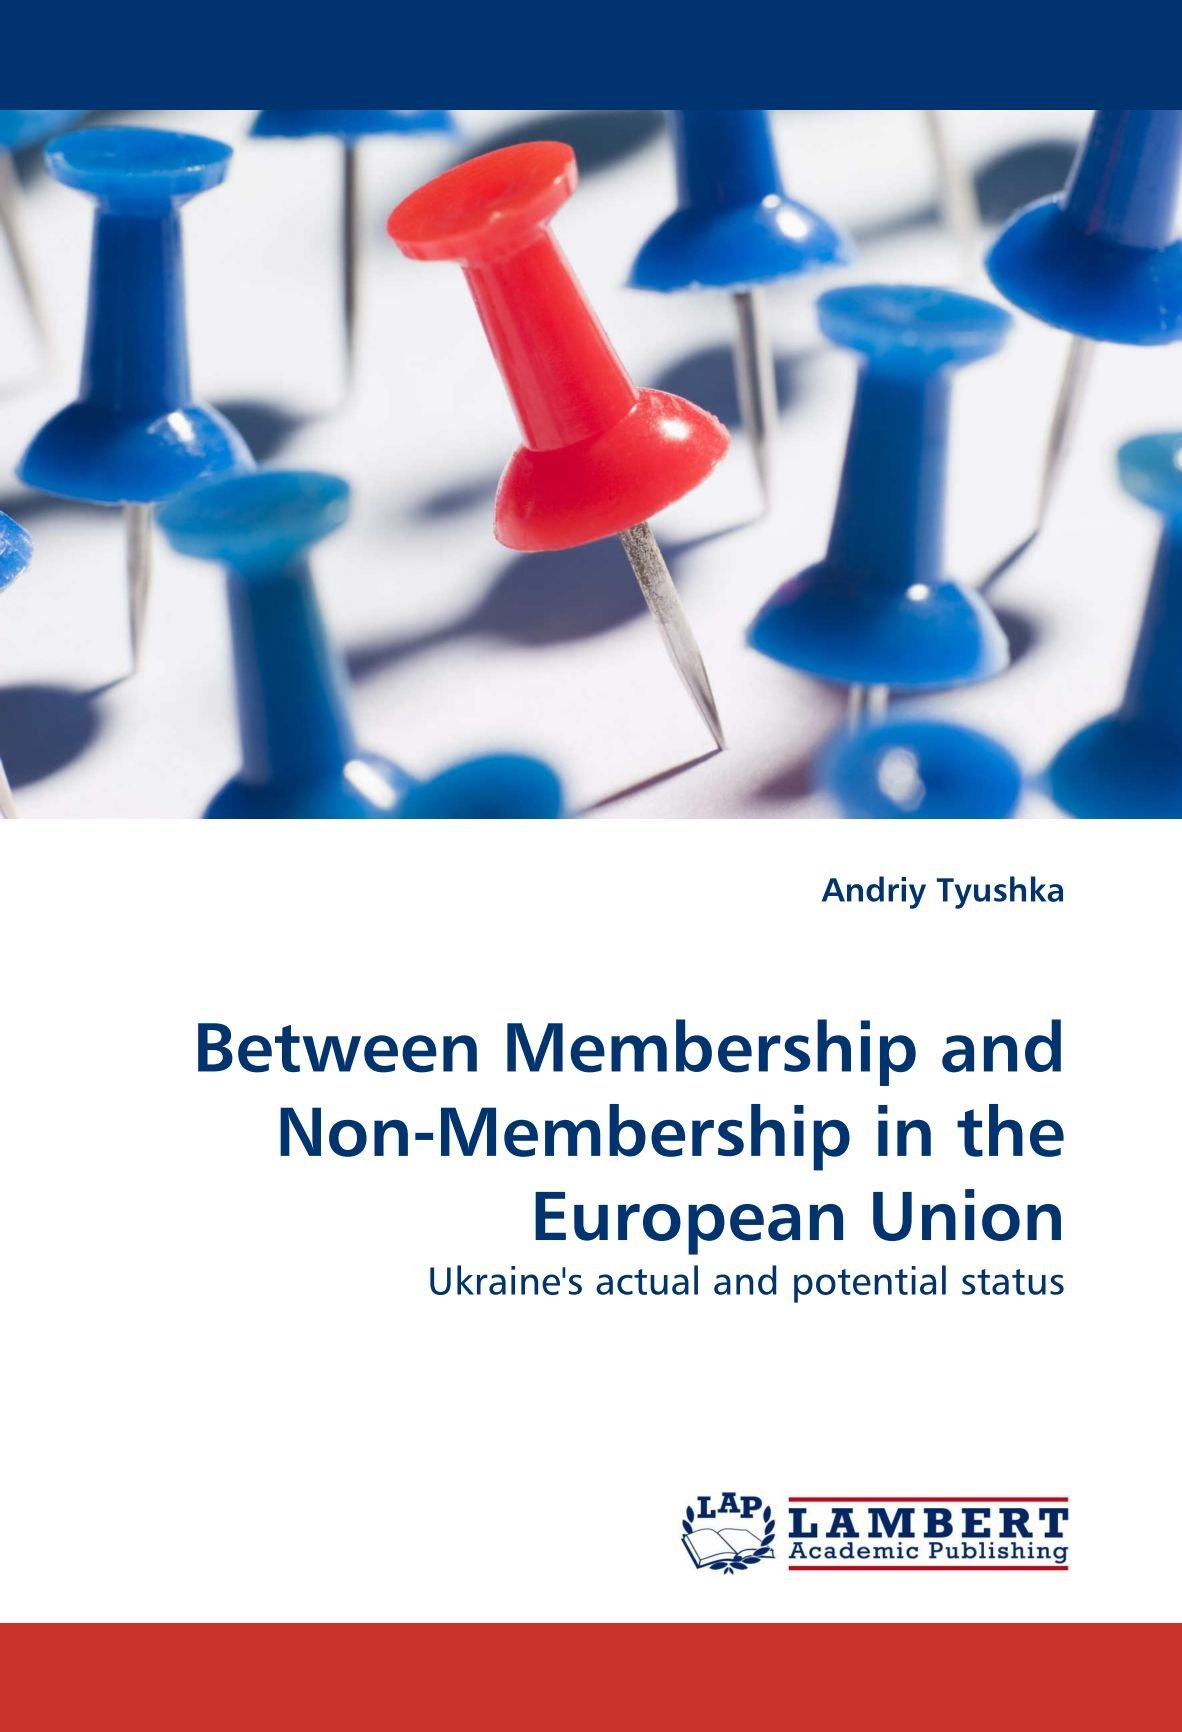 Between Membership and Non-Membership in the European Union ...